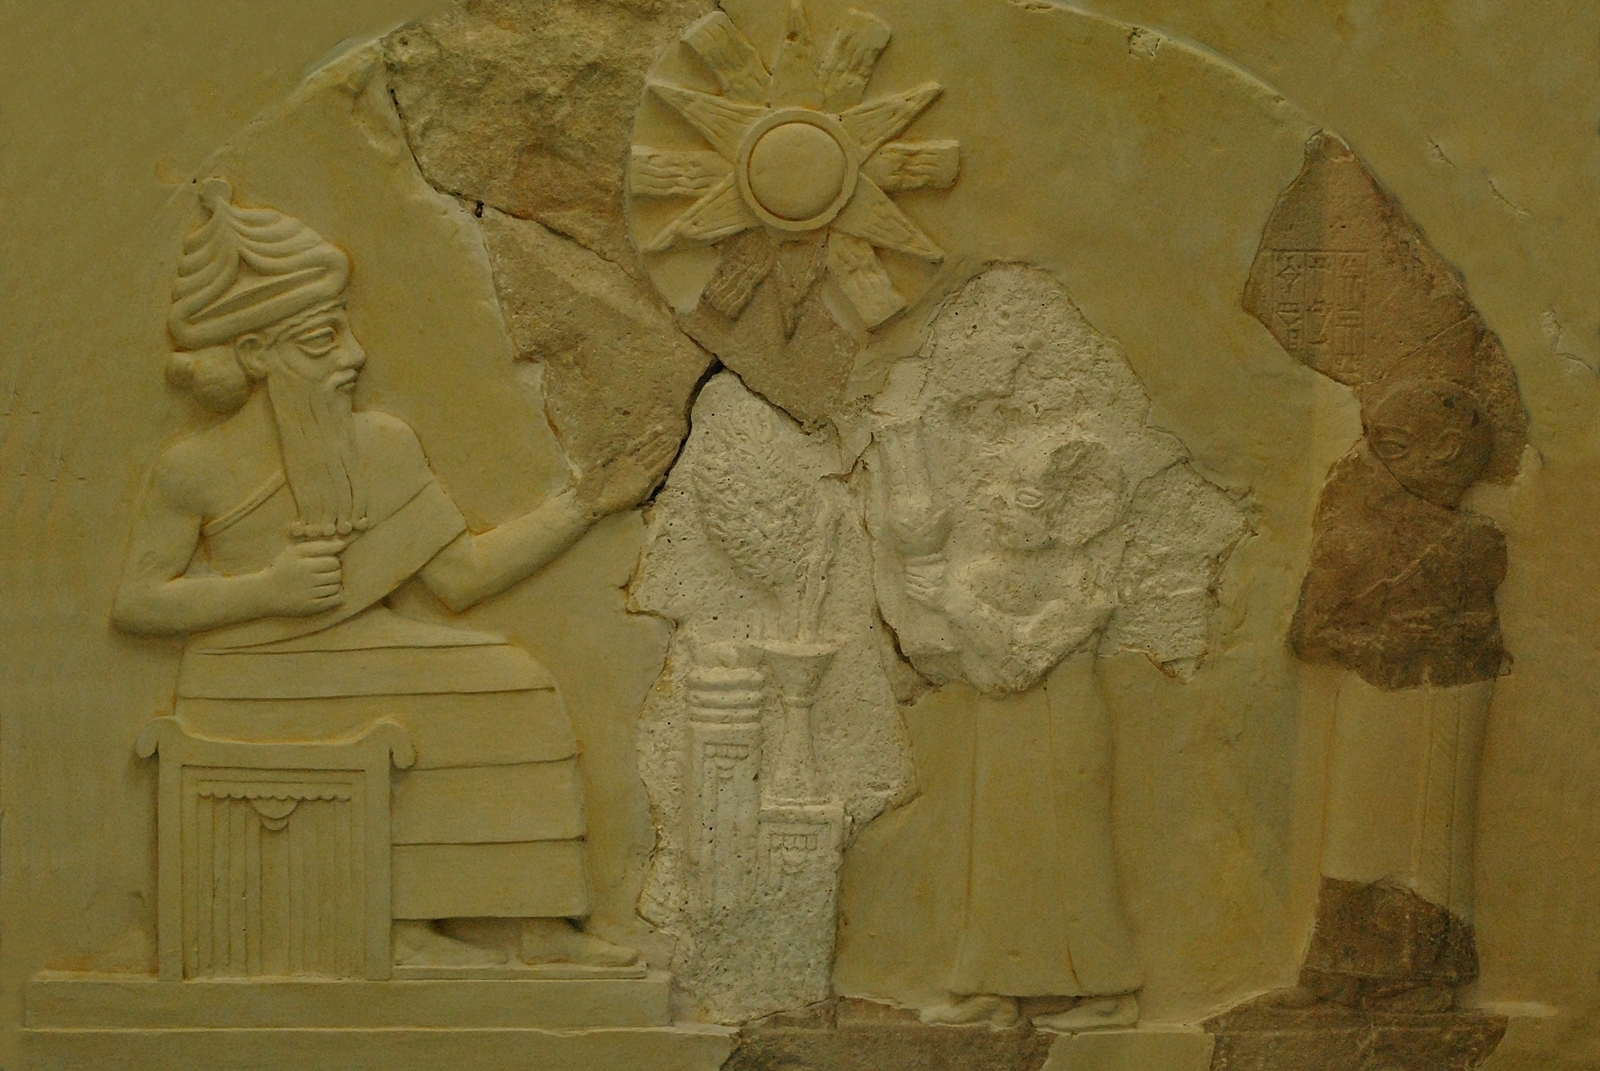 The Priest King of Lagash and Gudea